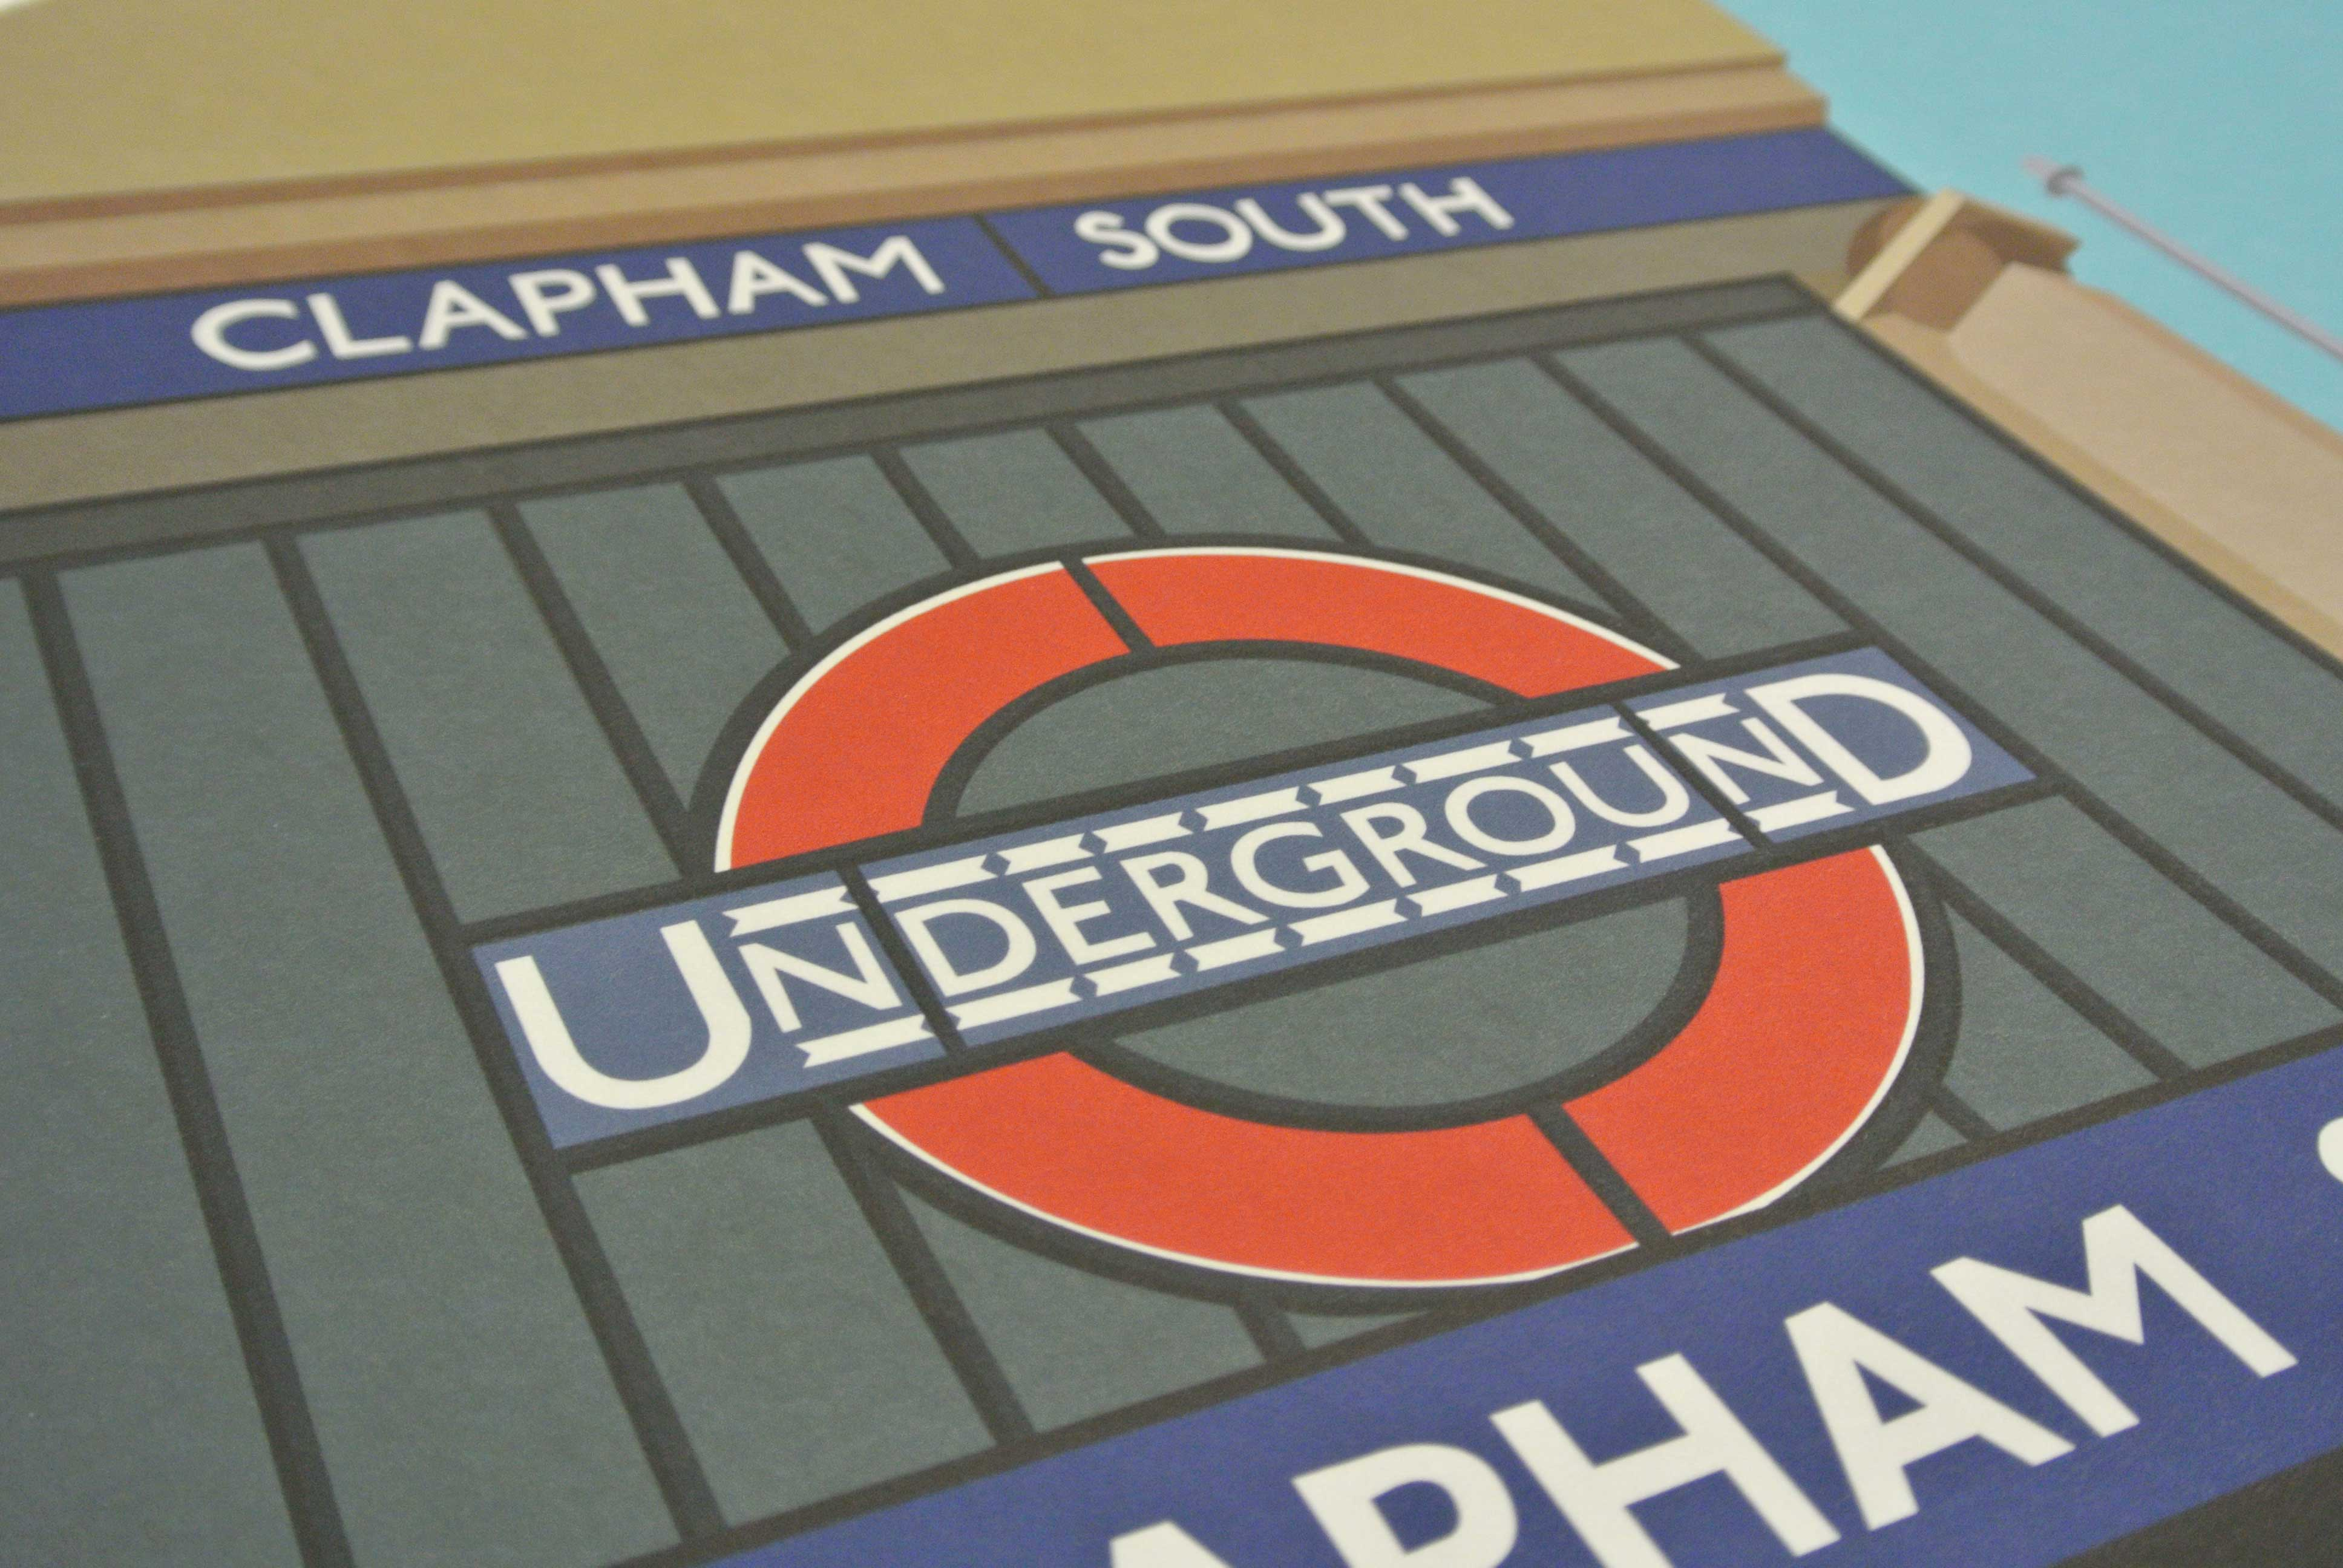 Place in Print South London Prints Clapham South Tube Underground Station Art Print Photo